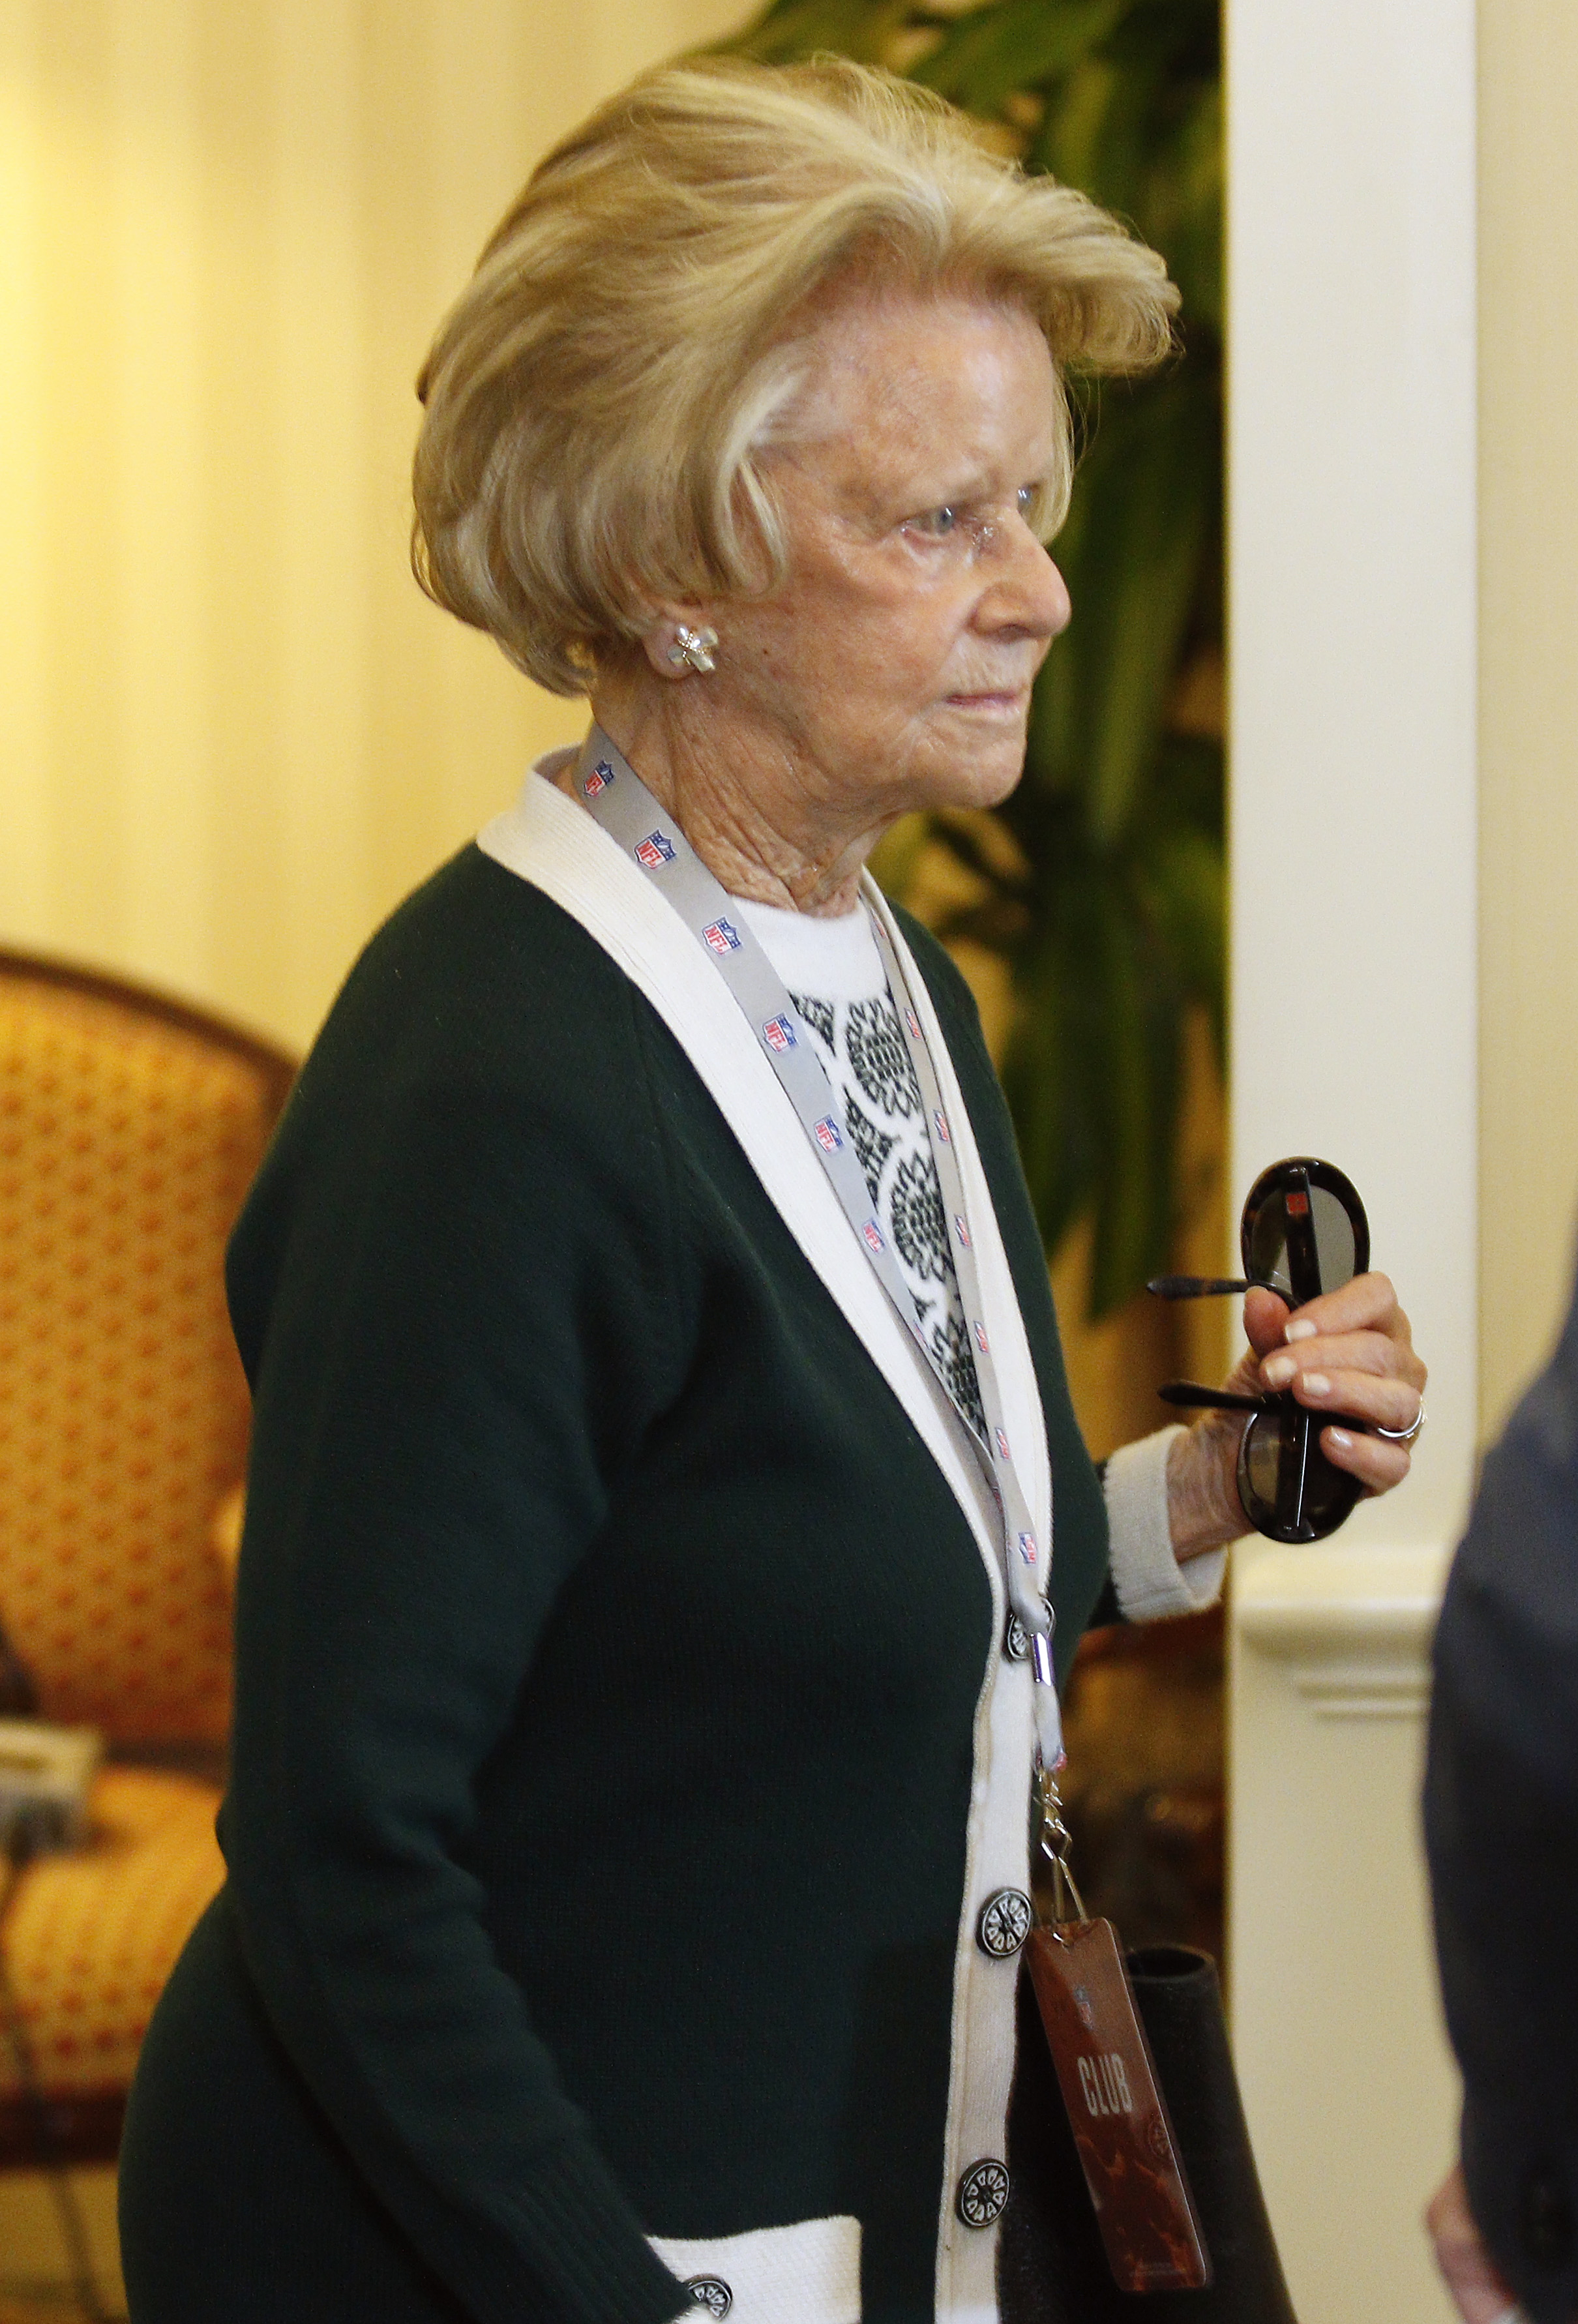 Chicago Bears owner Virginia McCaskey makes her way into the NFL owner's meeting in Charlotte N.C., Tuesday, May 24, 2016. (AP Photo/Bob Leverone)